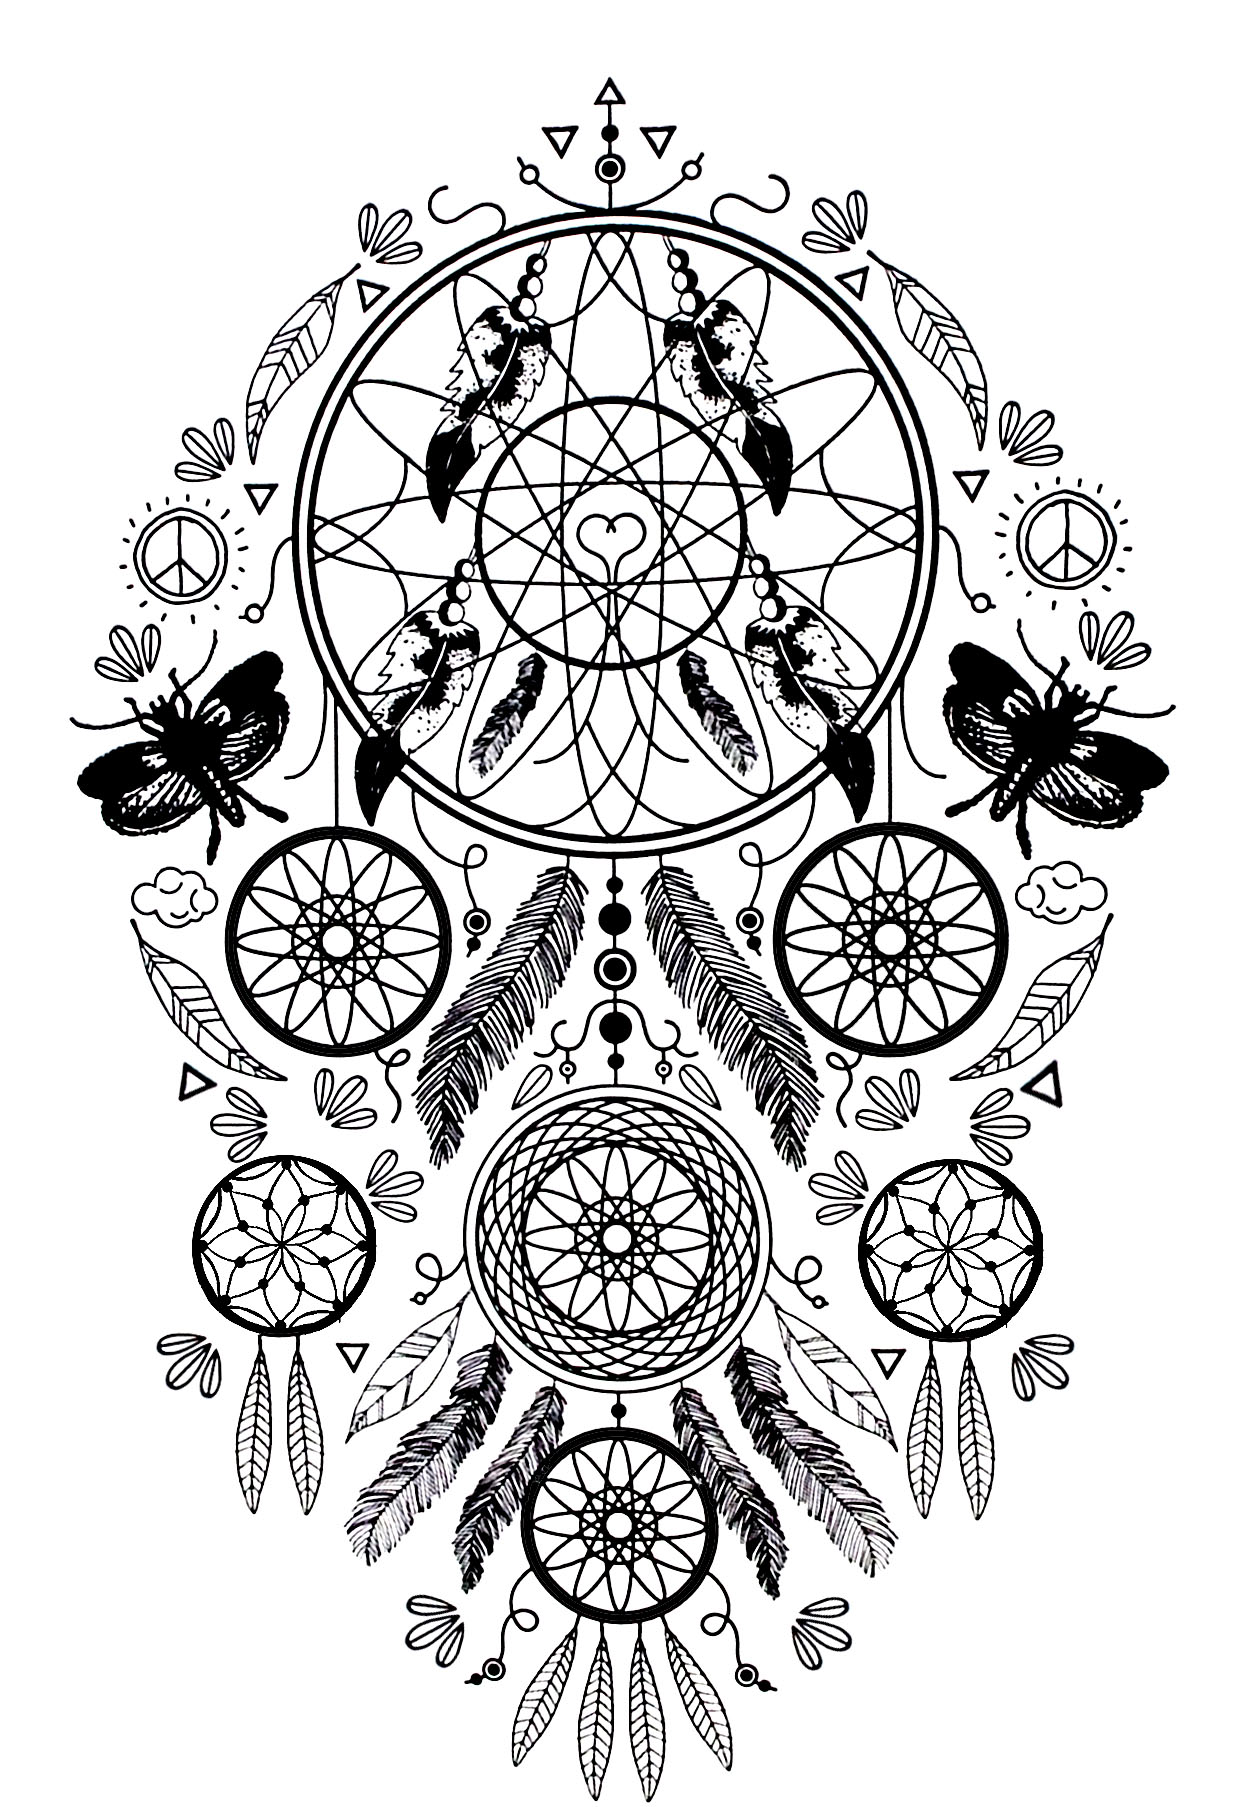 Dreamcatcher to print and color : Butterflies and feathers | From the gallery : Zen & Anti Stress